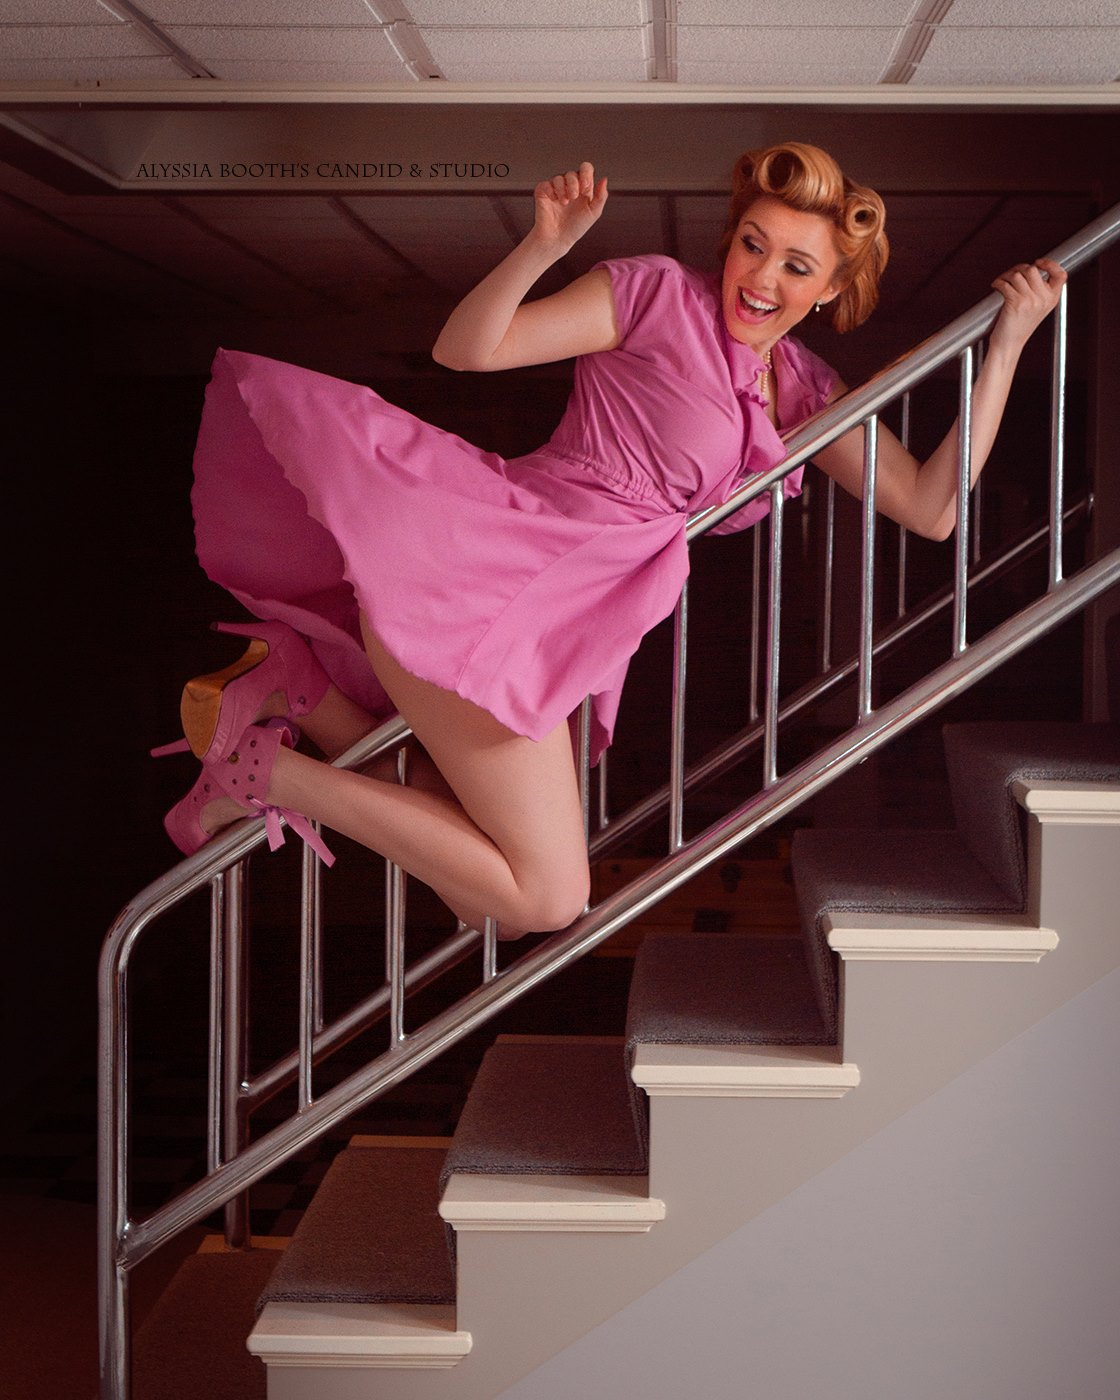 Vintage Stair Rail | Slide | Coke Bar Shoots | Pinup | Alyssia Booth's Candid & Studio | East Lansing Photographer